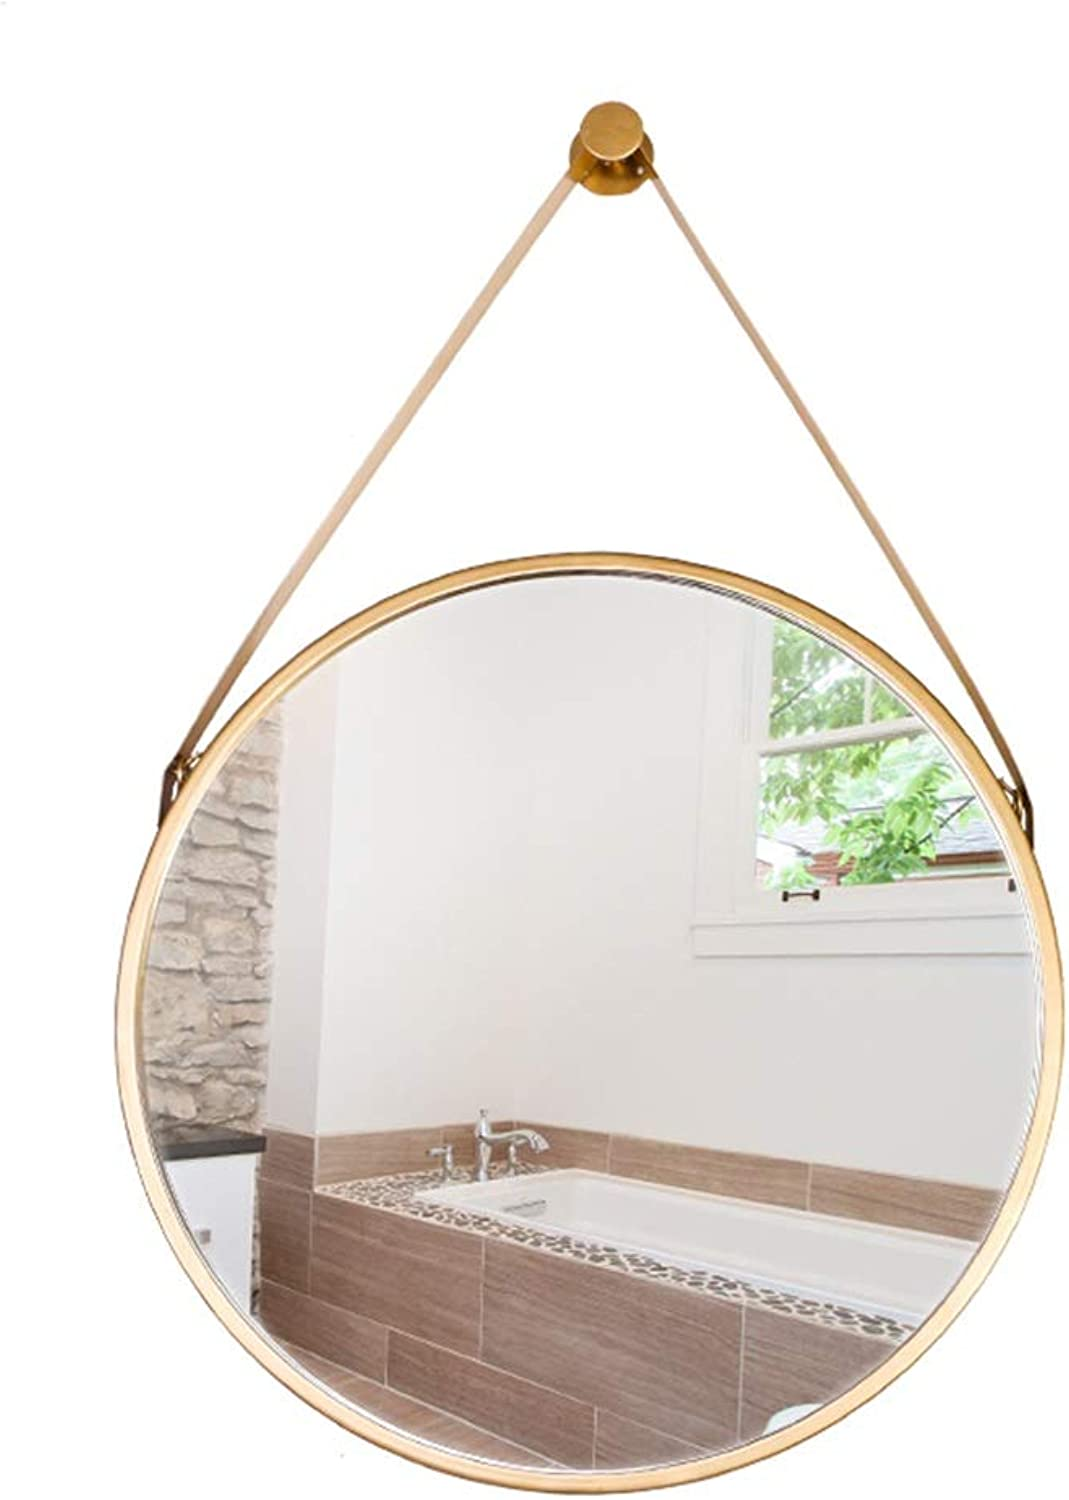 LH-Mirror Round Hanging Mirror Wall Bathroom Mirror   Circle Wall Mounted Vanity Makeup and Shaving Mirror   Circle Plane Mirror   gold Metal Frame (Size   Diameter 60CM)